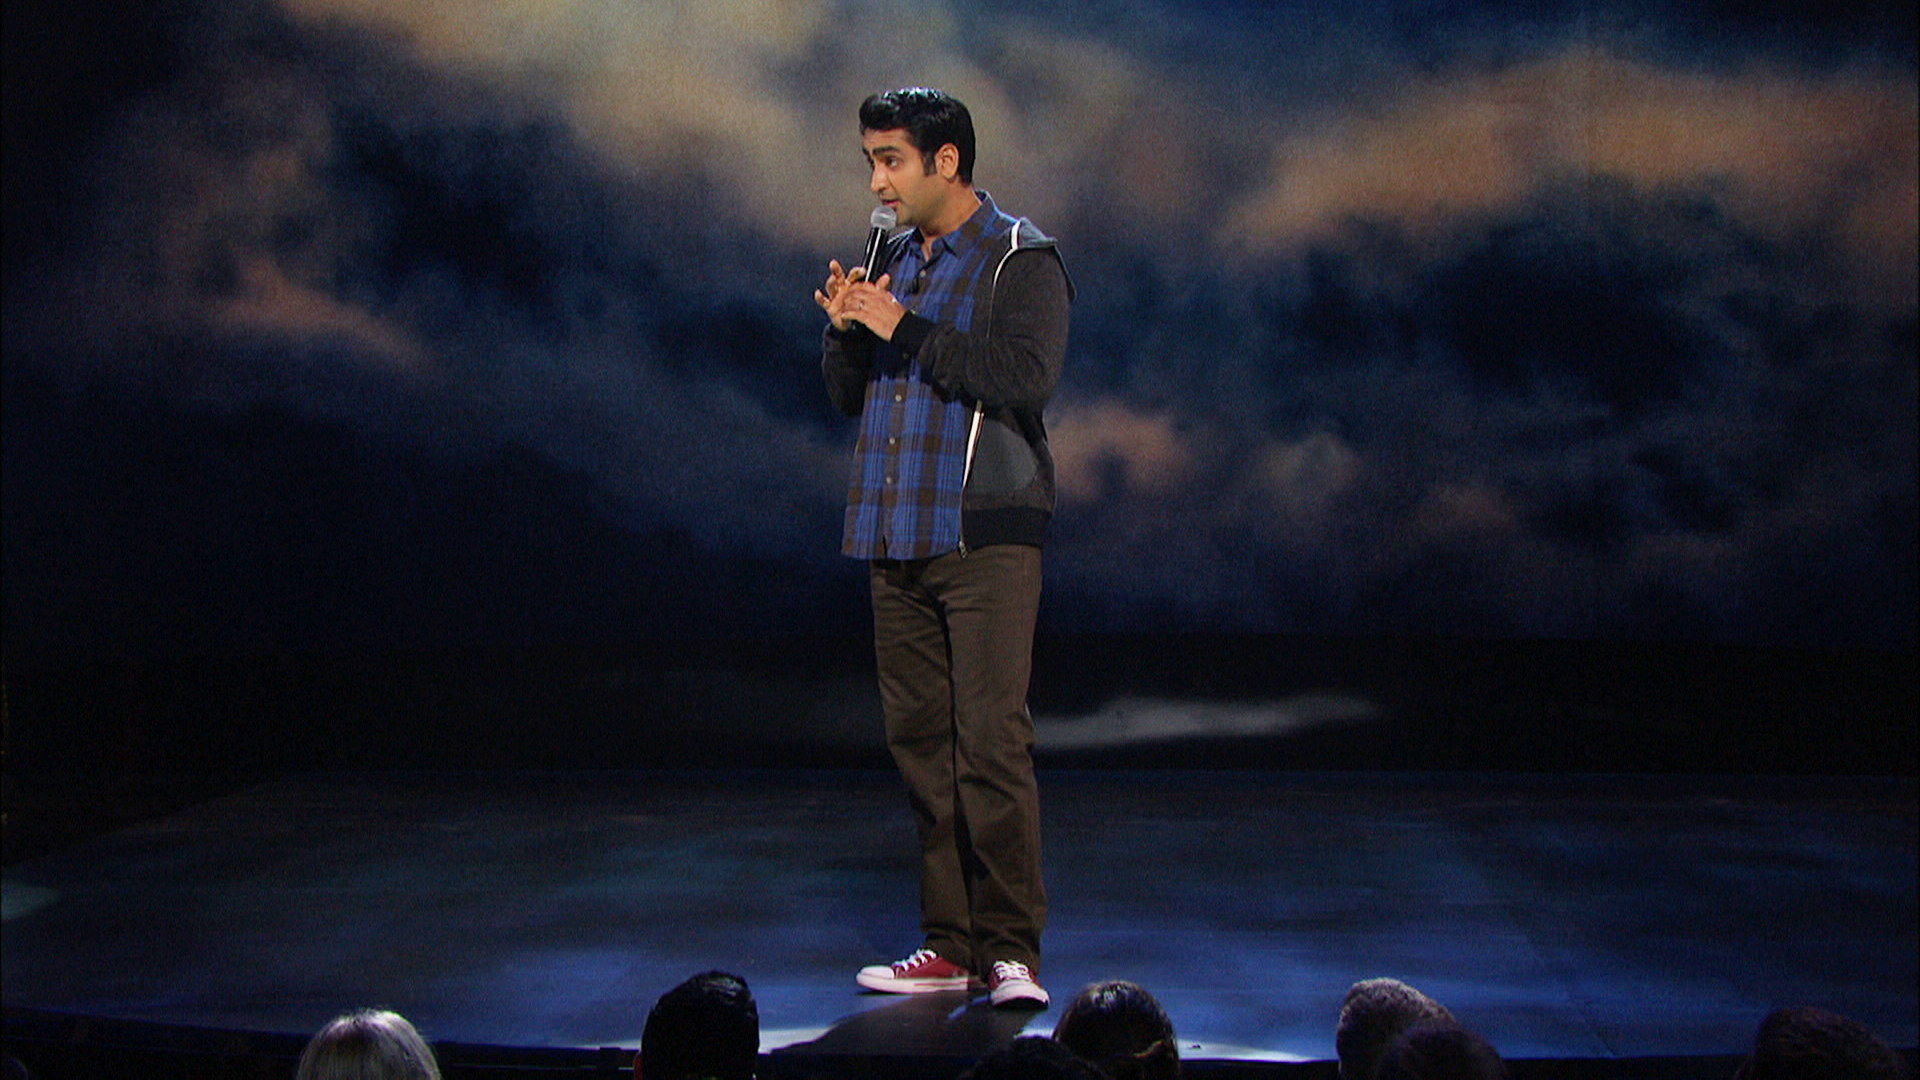 Uncensored - Kumail Nanjiani - Renting